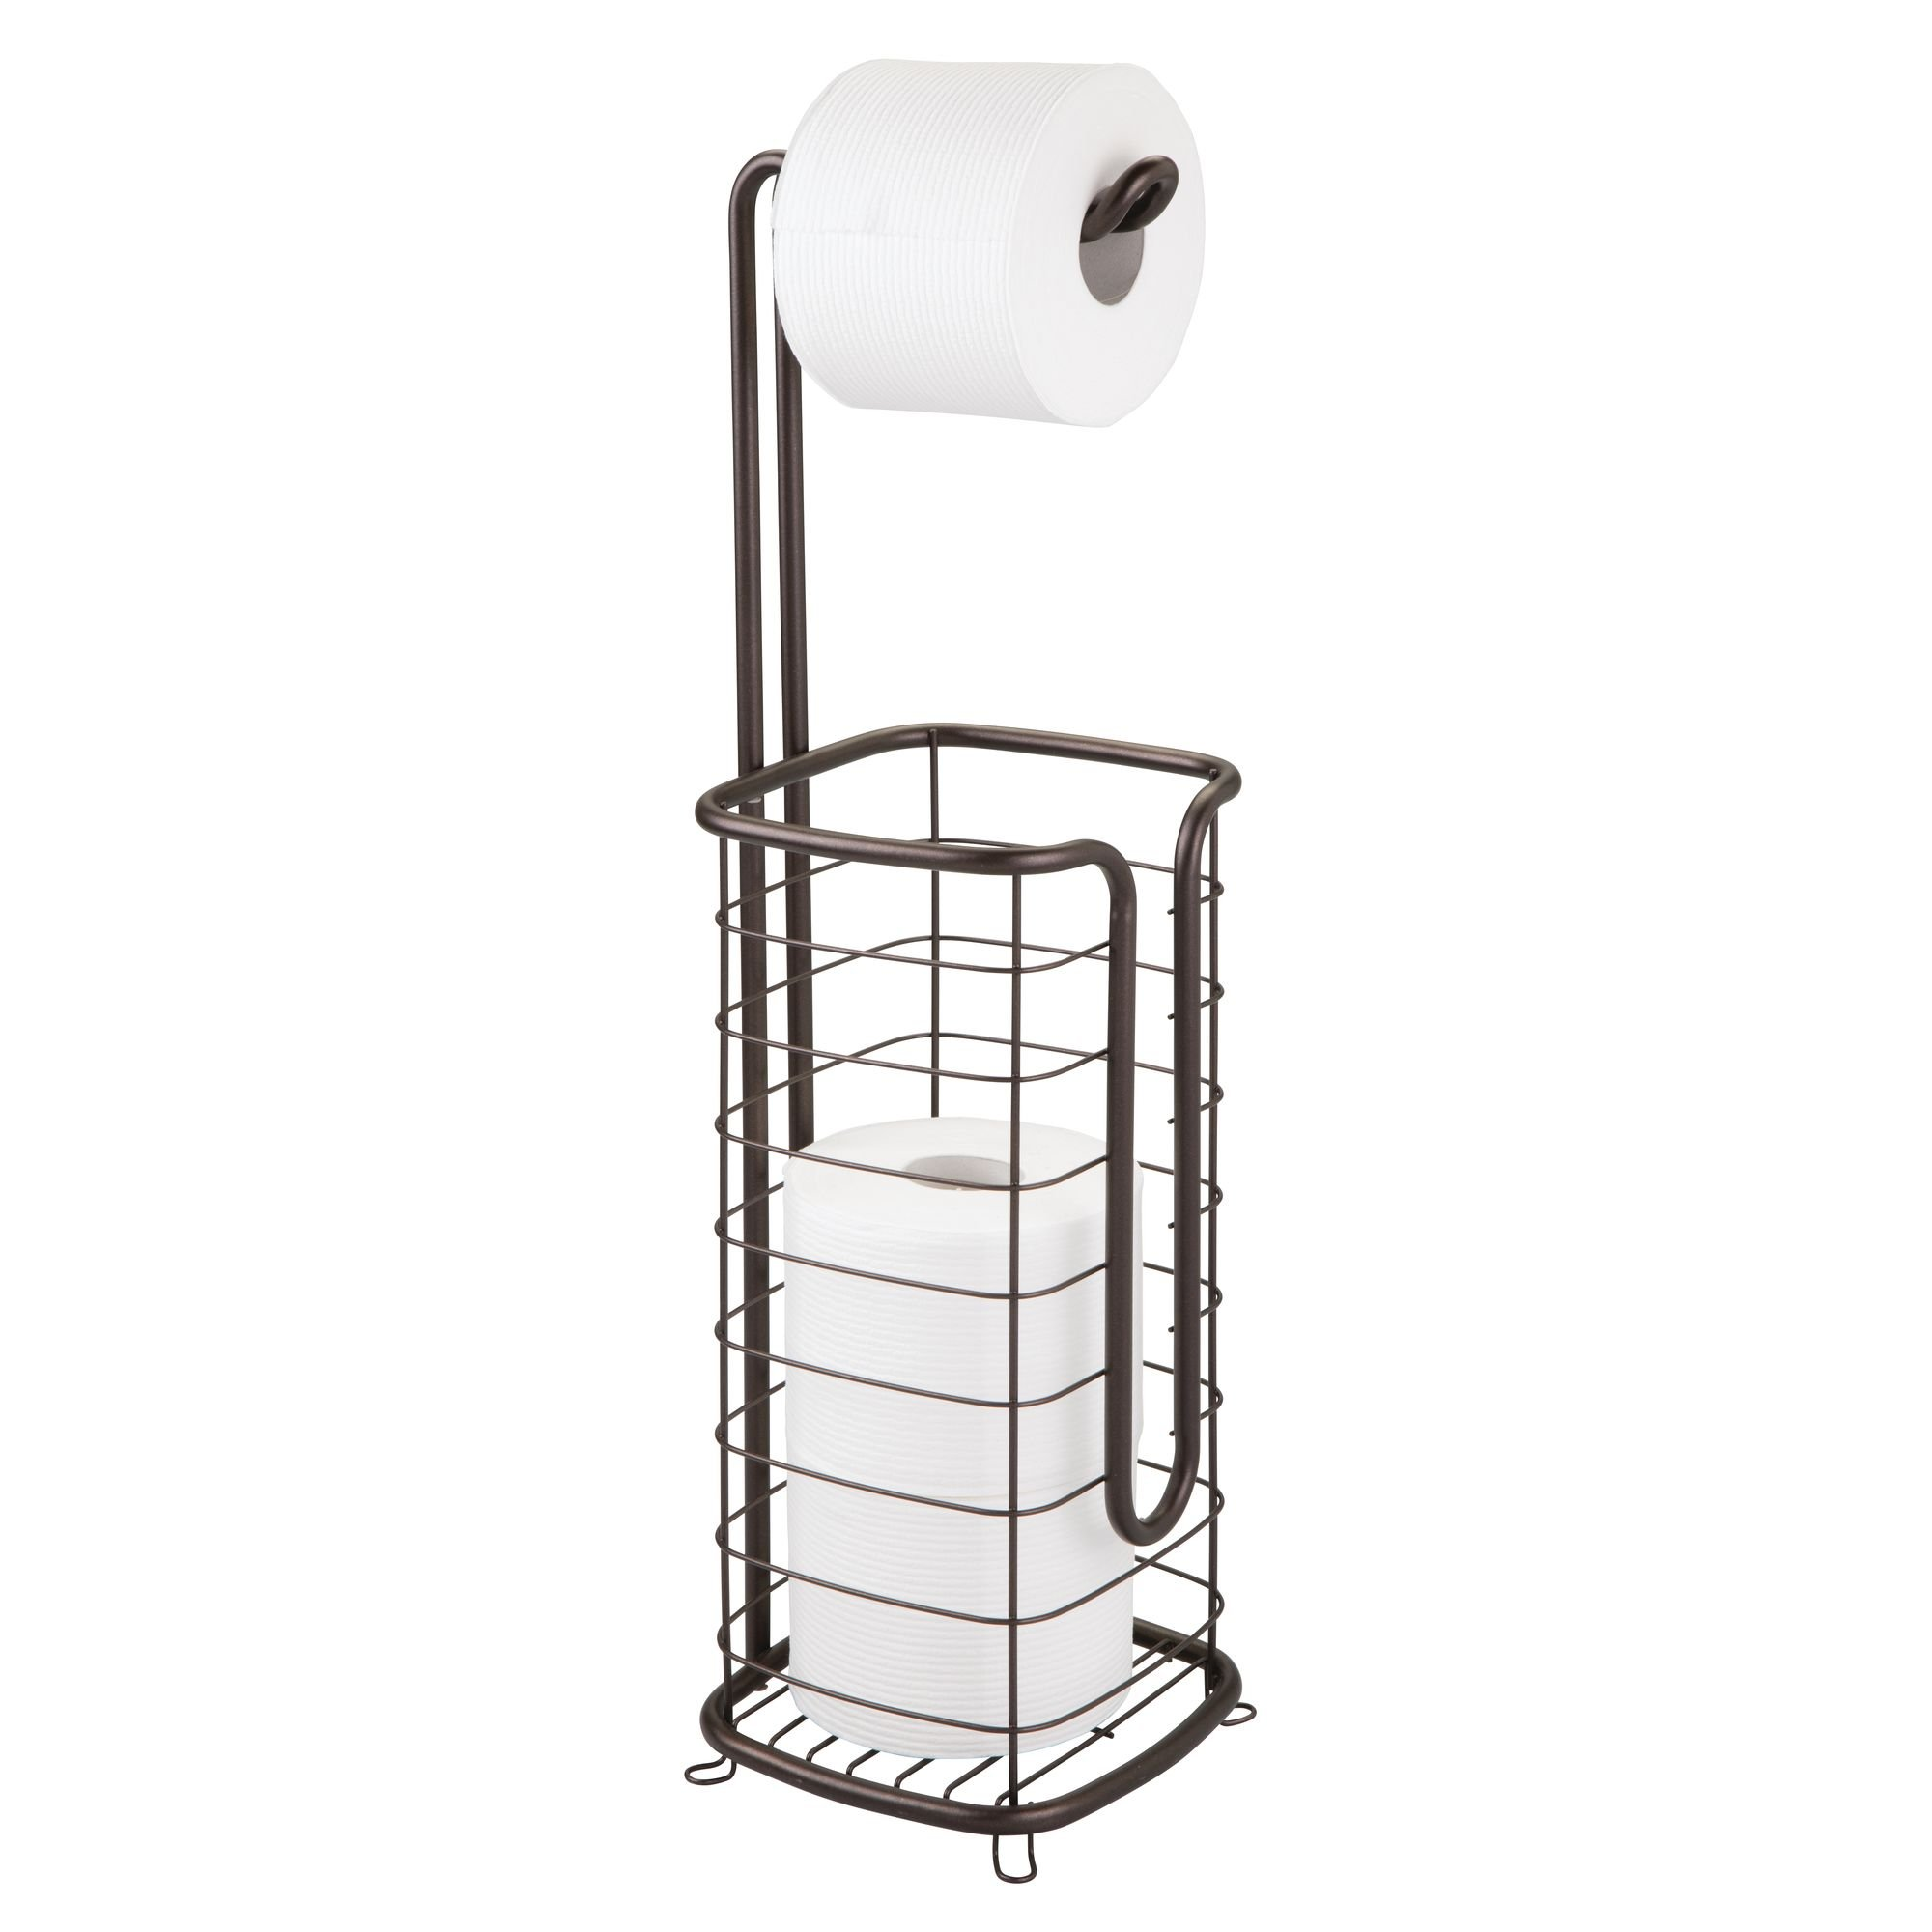 mDesign Free Standing Toilet Paper Holder Stand and Dispenser, with Storage for 3 Spare Rolls of Toilet Tissue While Dispensing 1 Roll - for Bathrooms/Powder Rooms - Holds Mega Rolls - Bronze